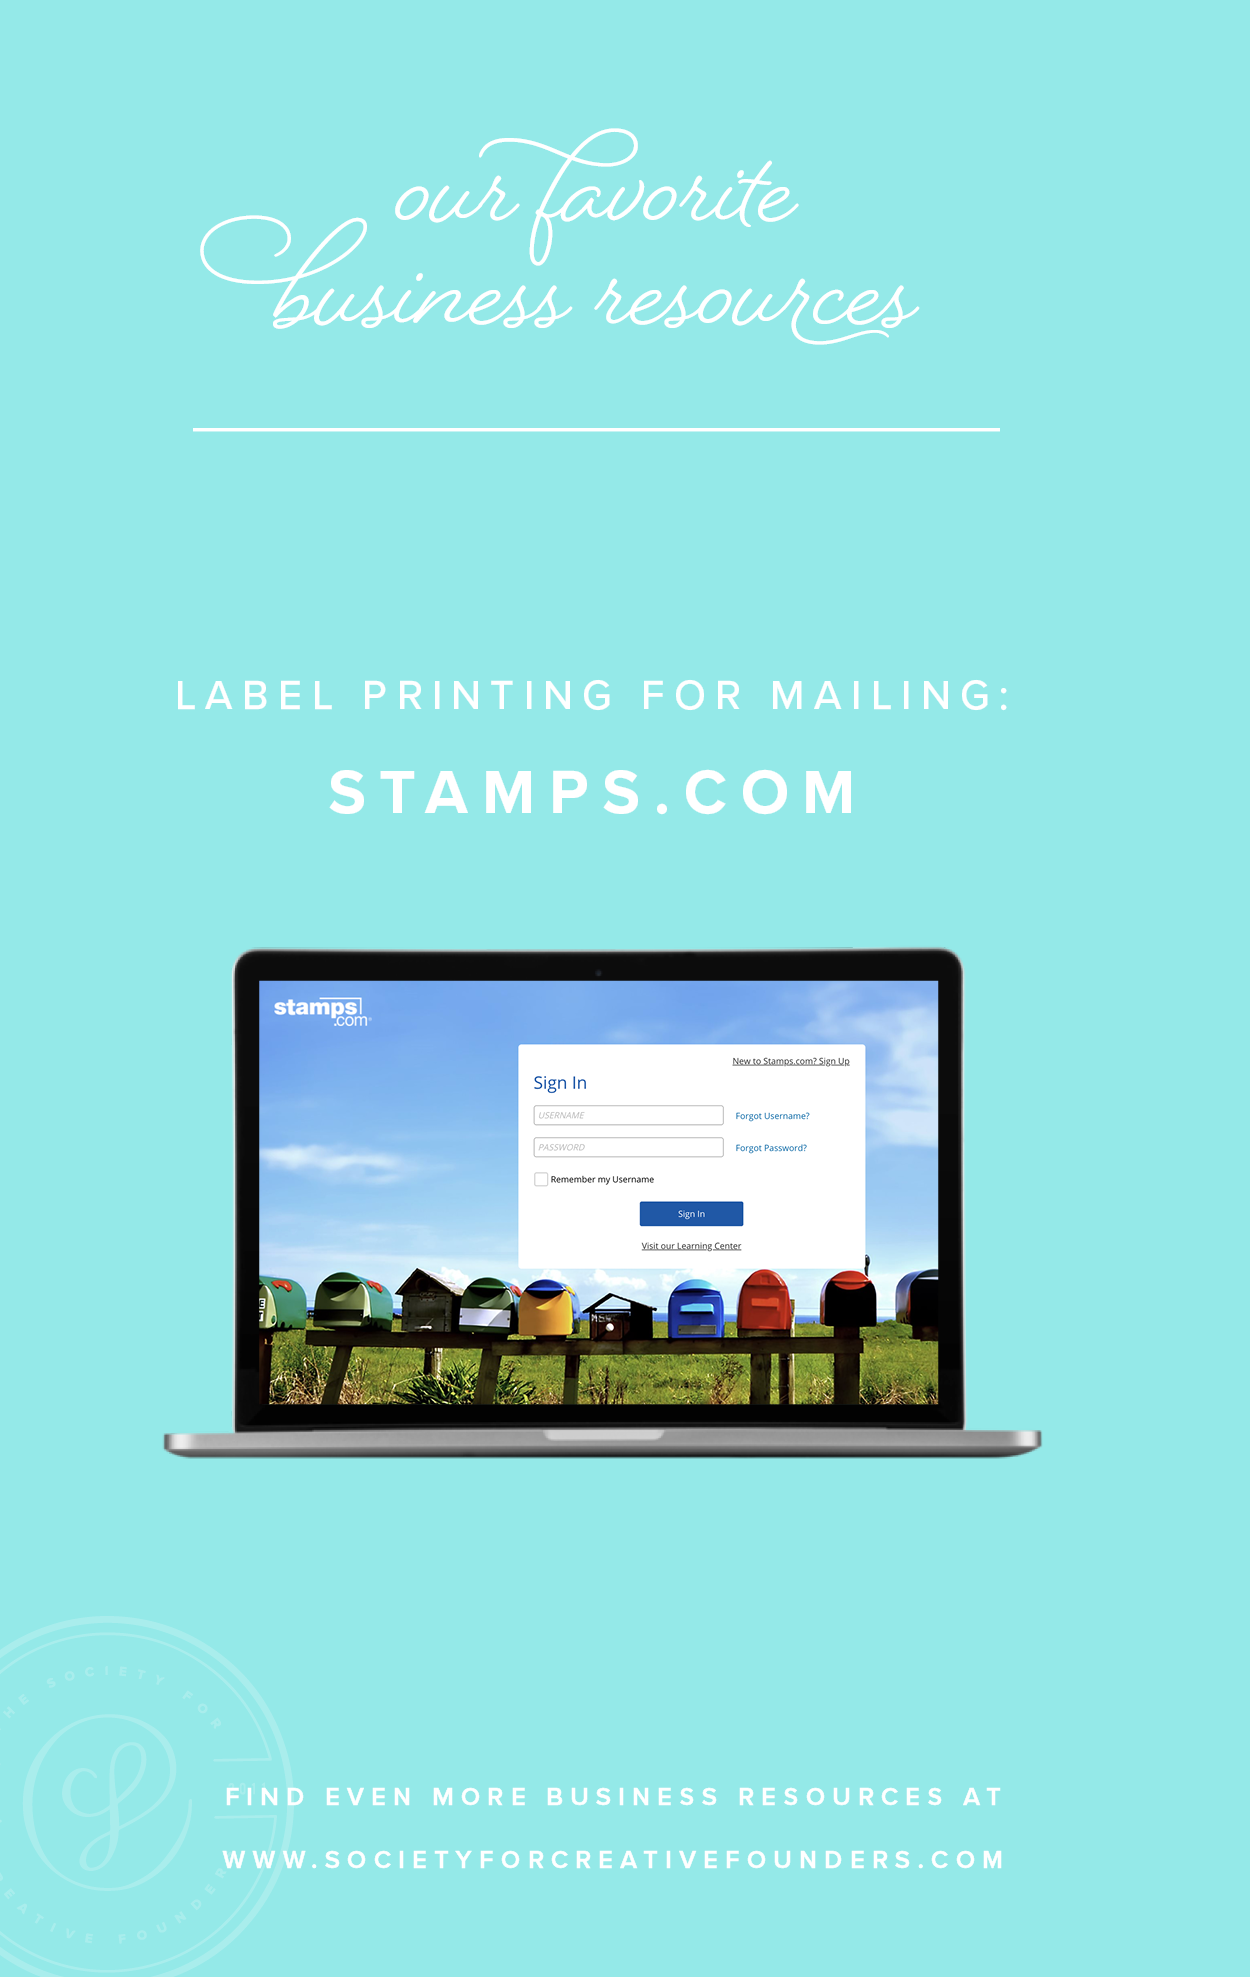 Label Printing with Stamps.com - Favorite Business Resources from Society for Creative Founders